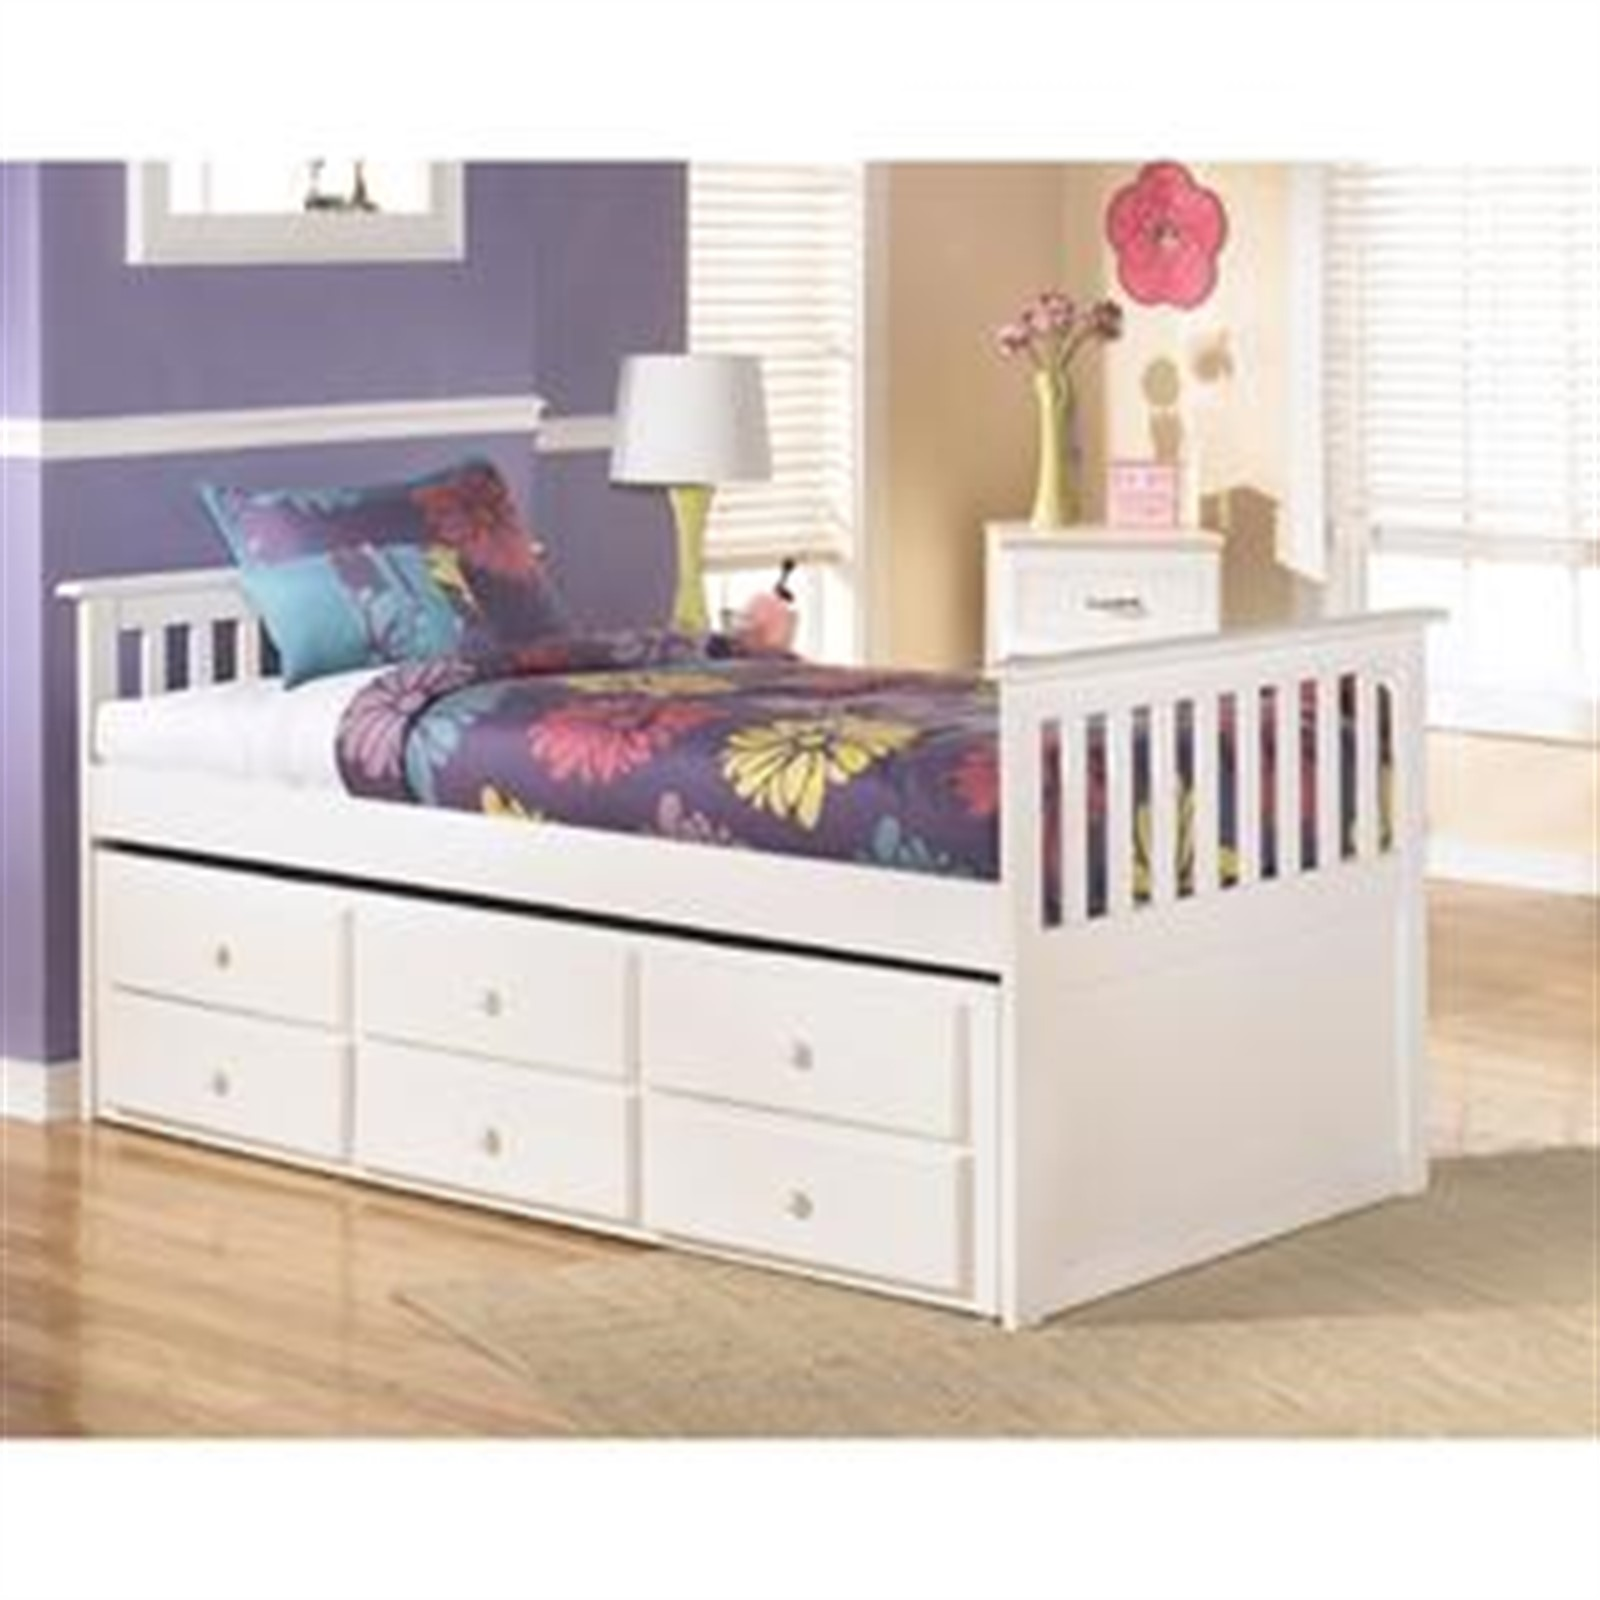 Lulu Bed with Trundle - Twin